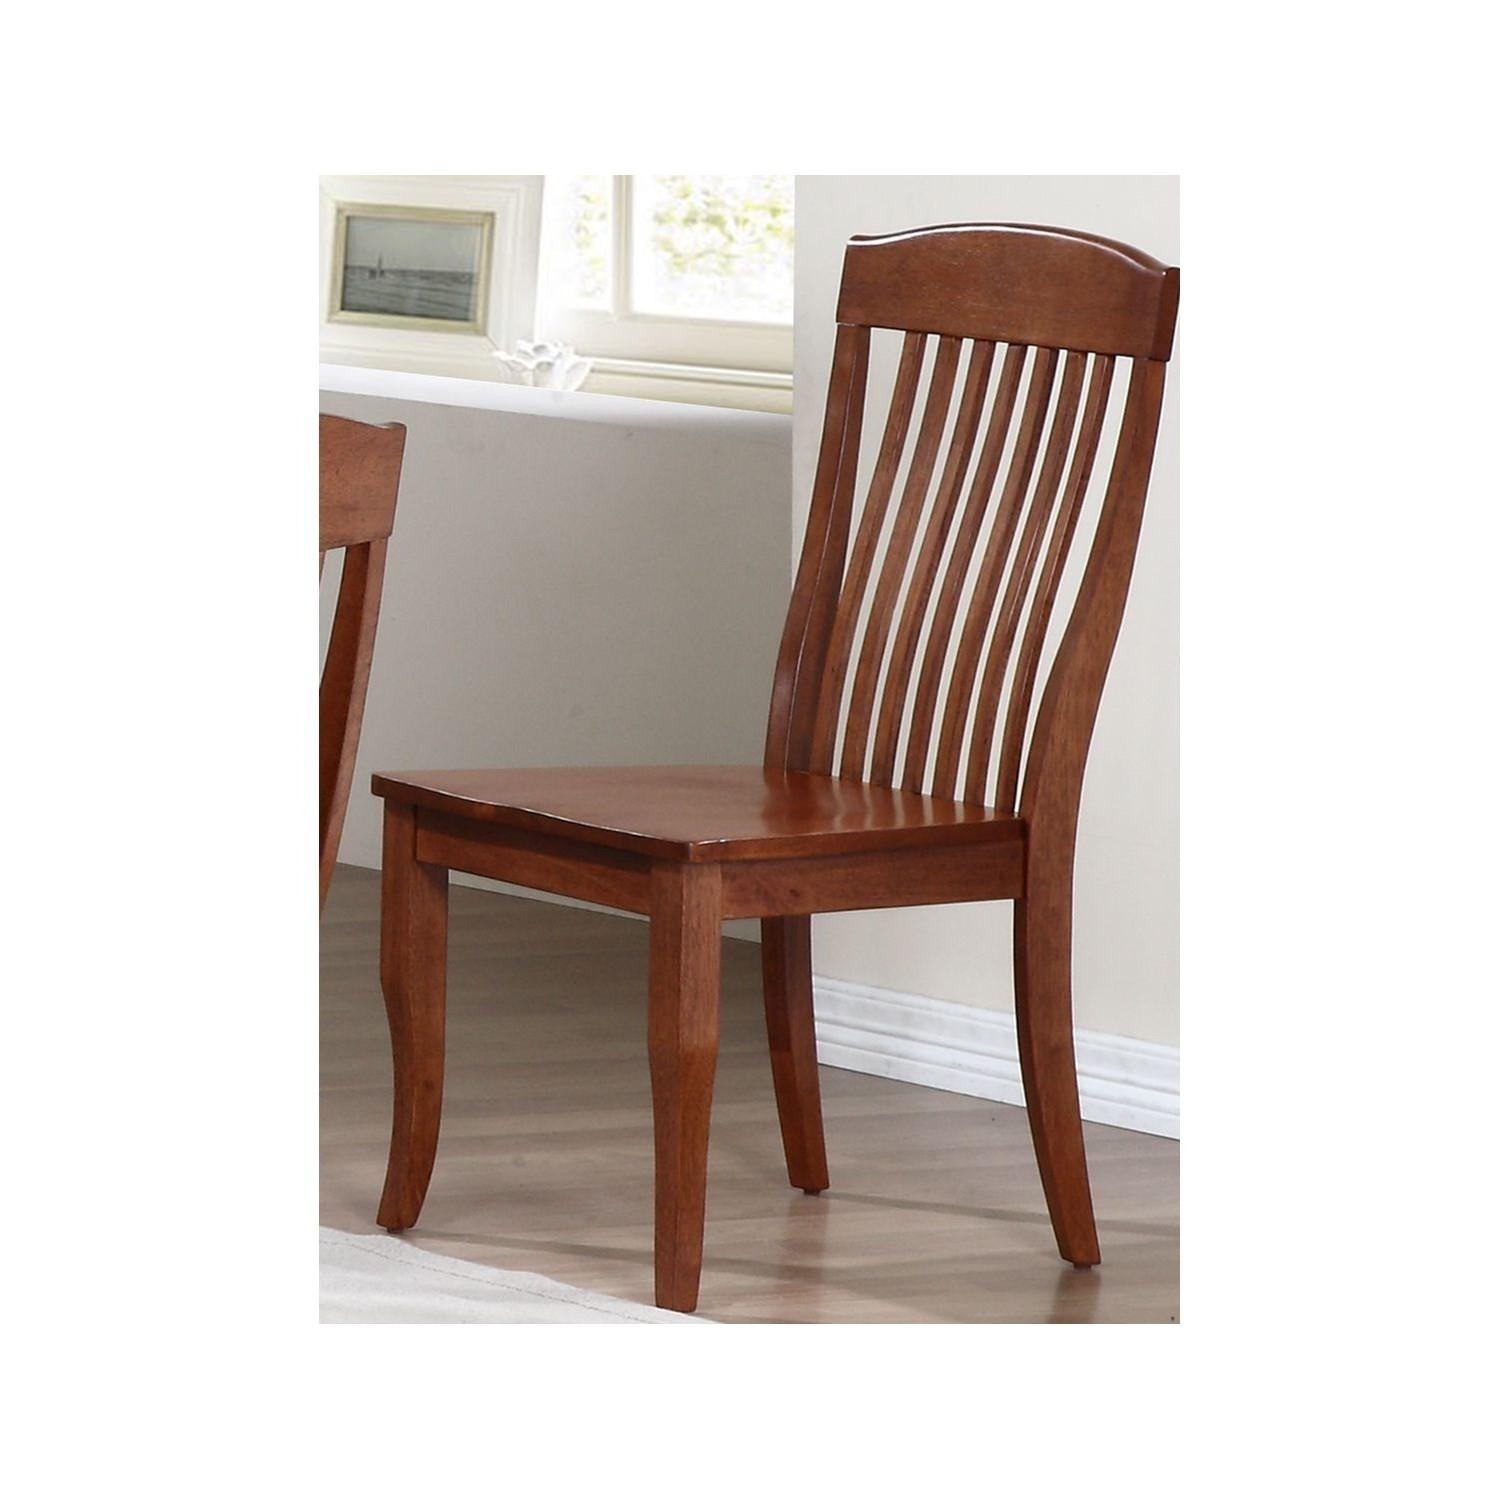 Iconic Furniture Contemporary Slatback Side Chair